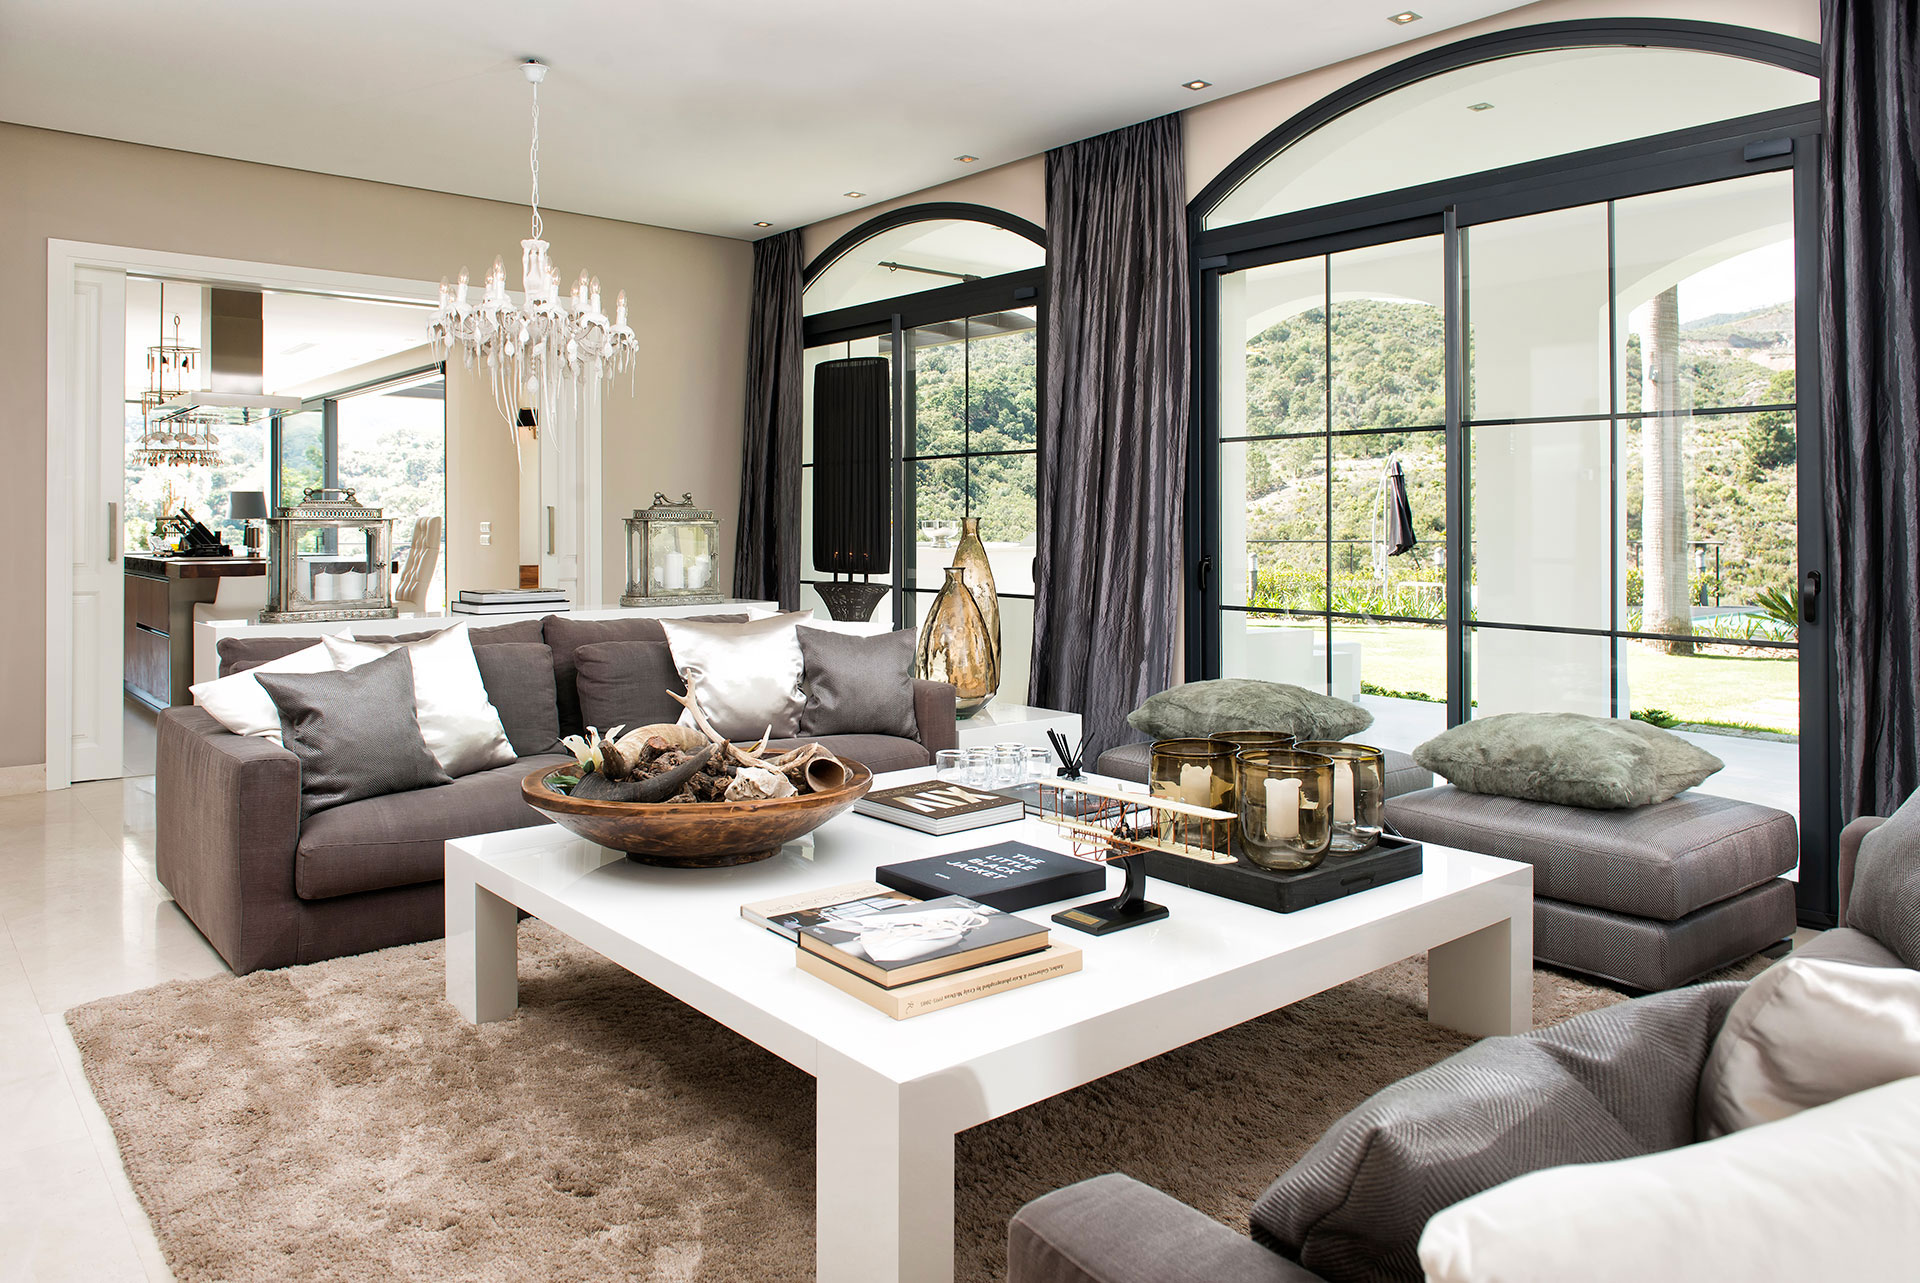 Home Styling and Interior Design Marbella